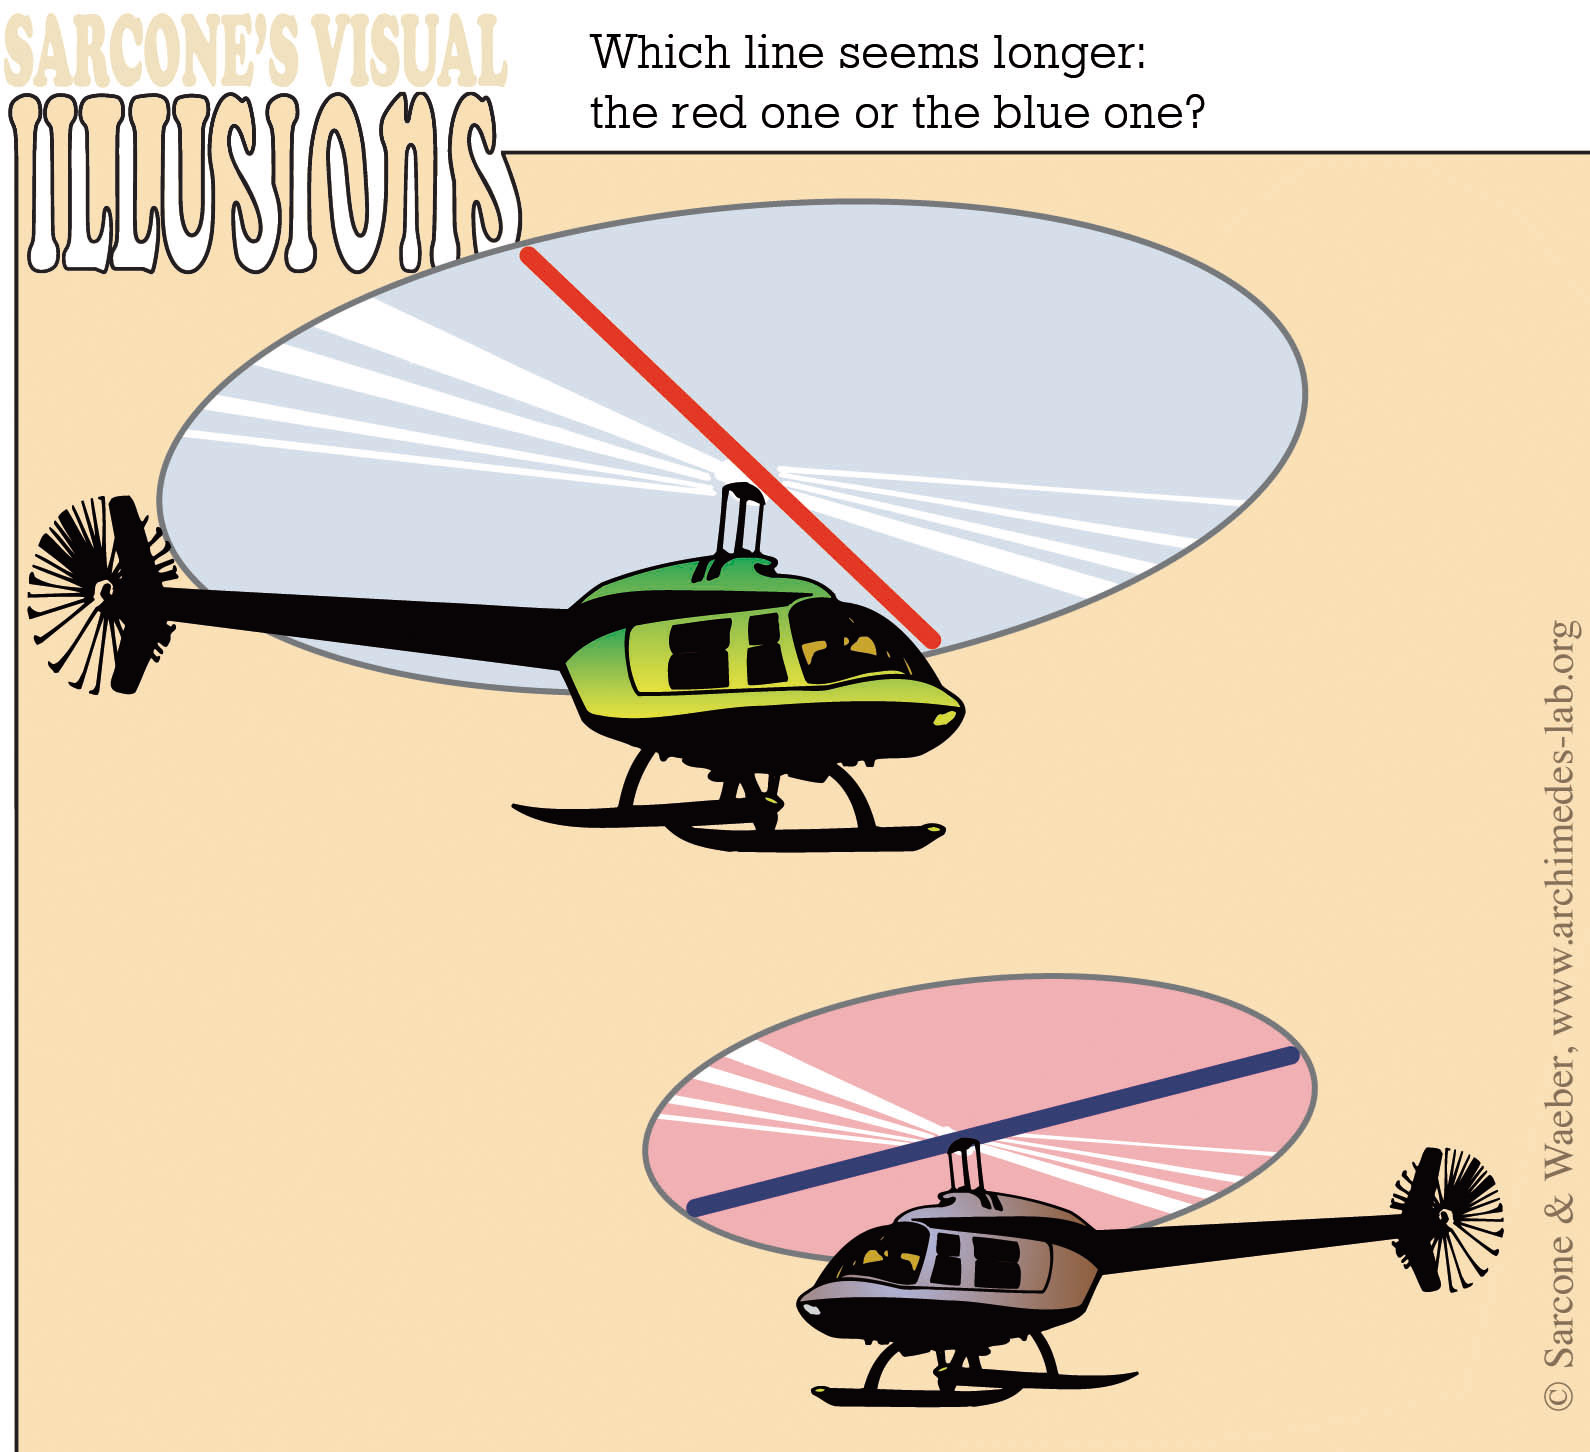 11-Helicopter_lines_syn.jpg